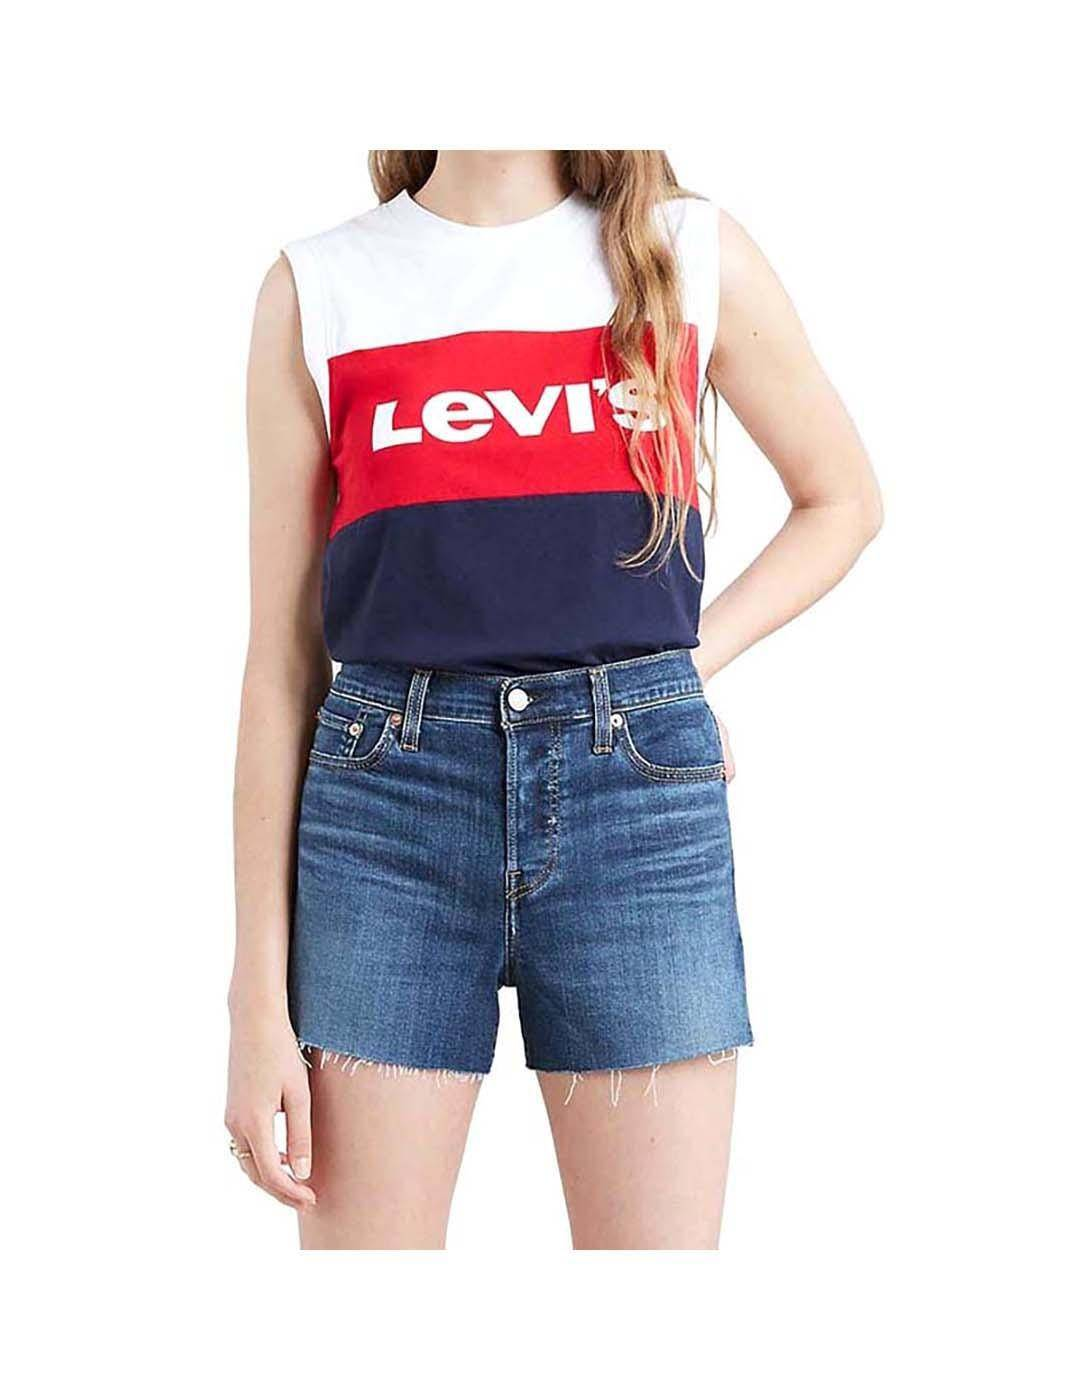 Levis Top Levis On Tour Cb Tank Colorblock Blanco Mujer - Xs